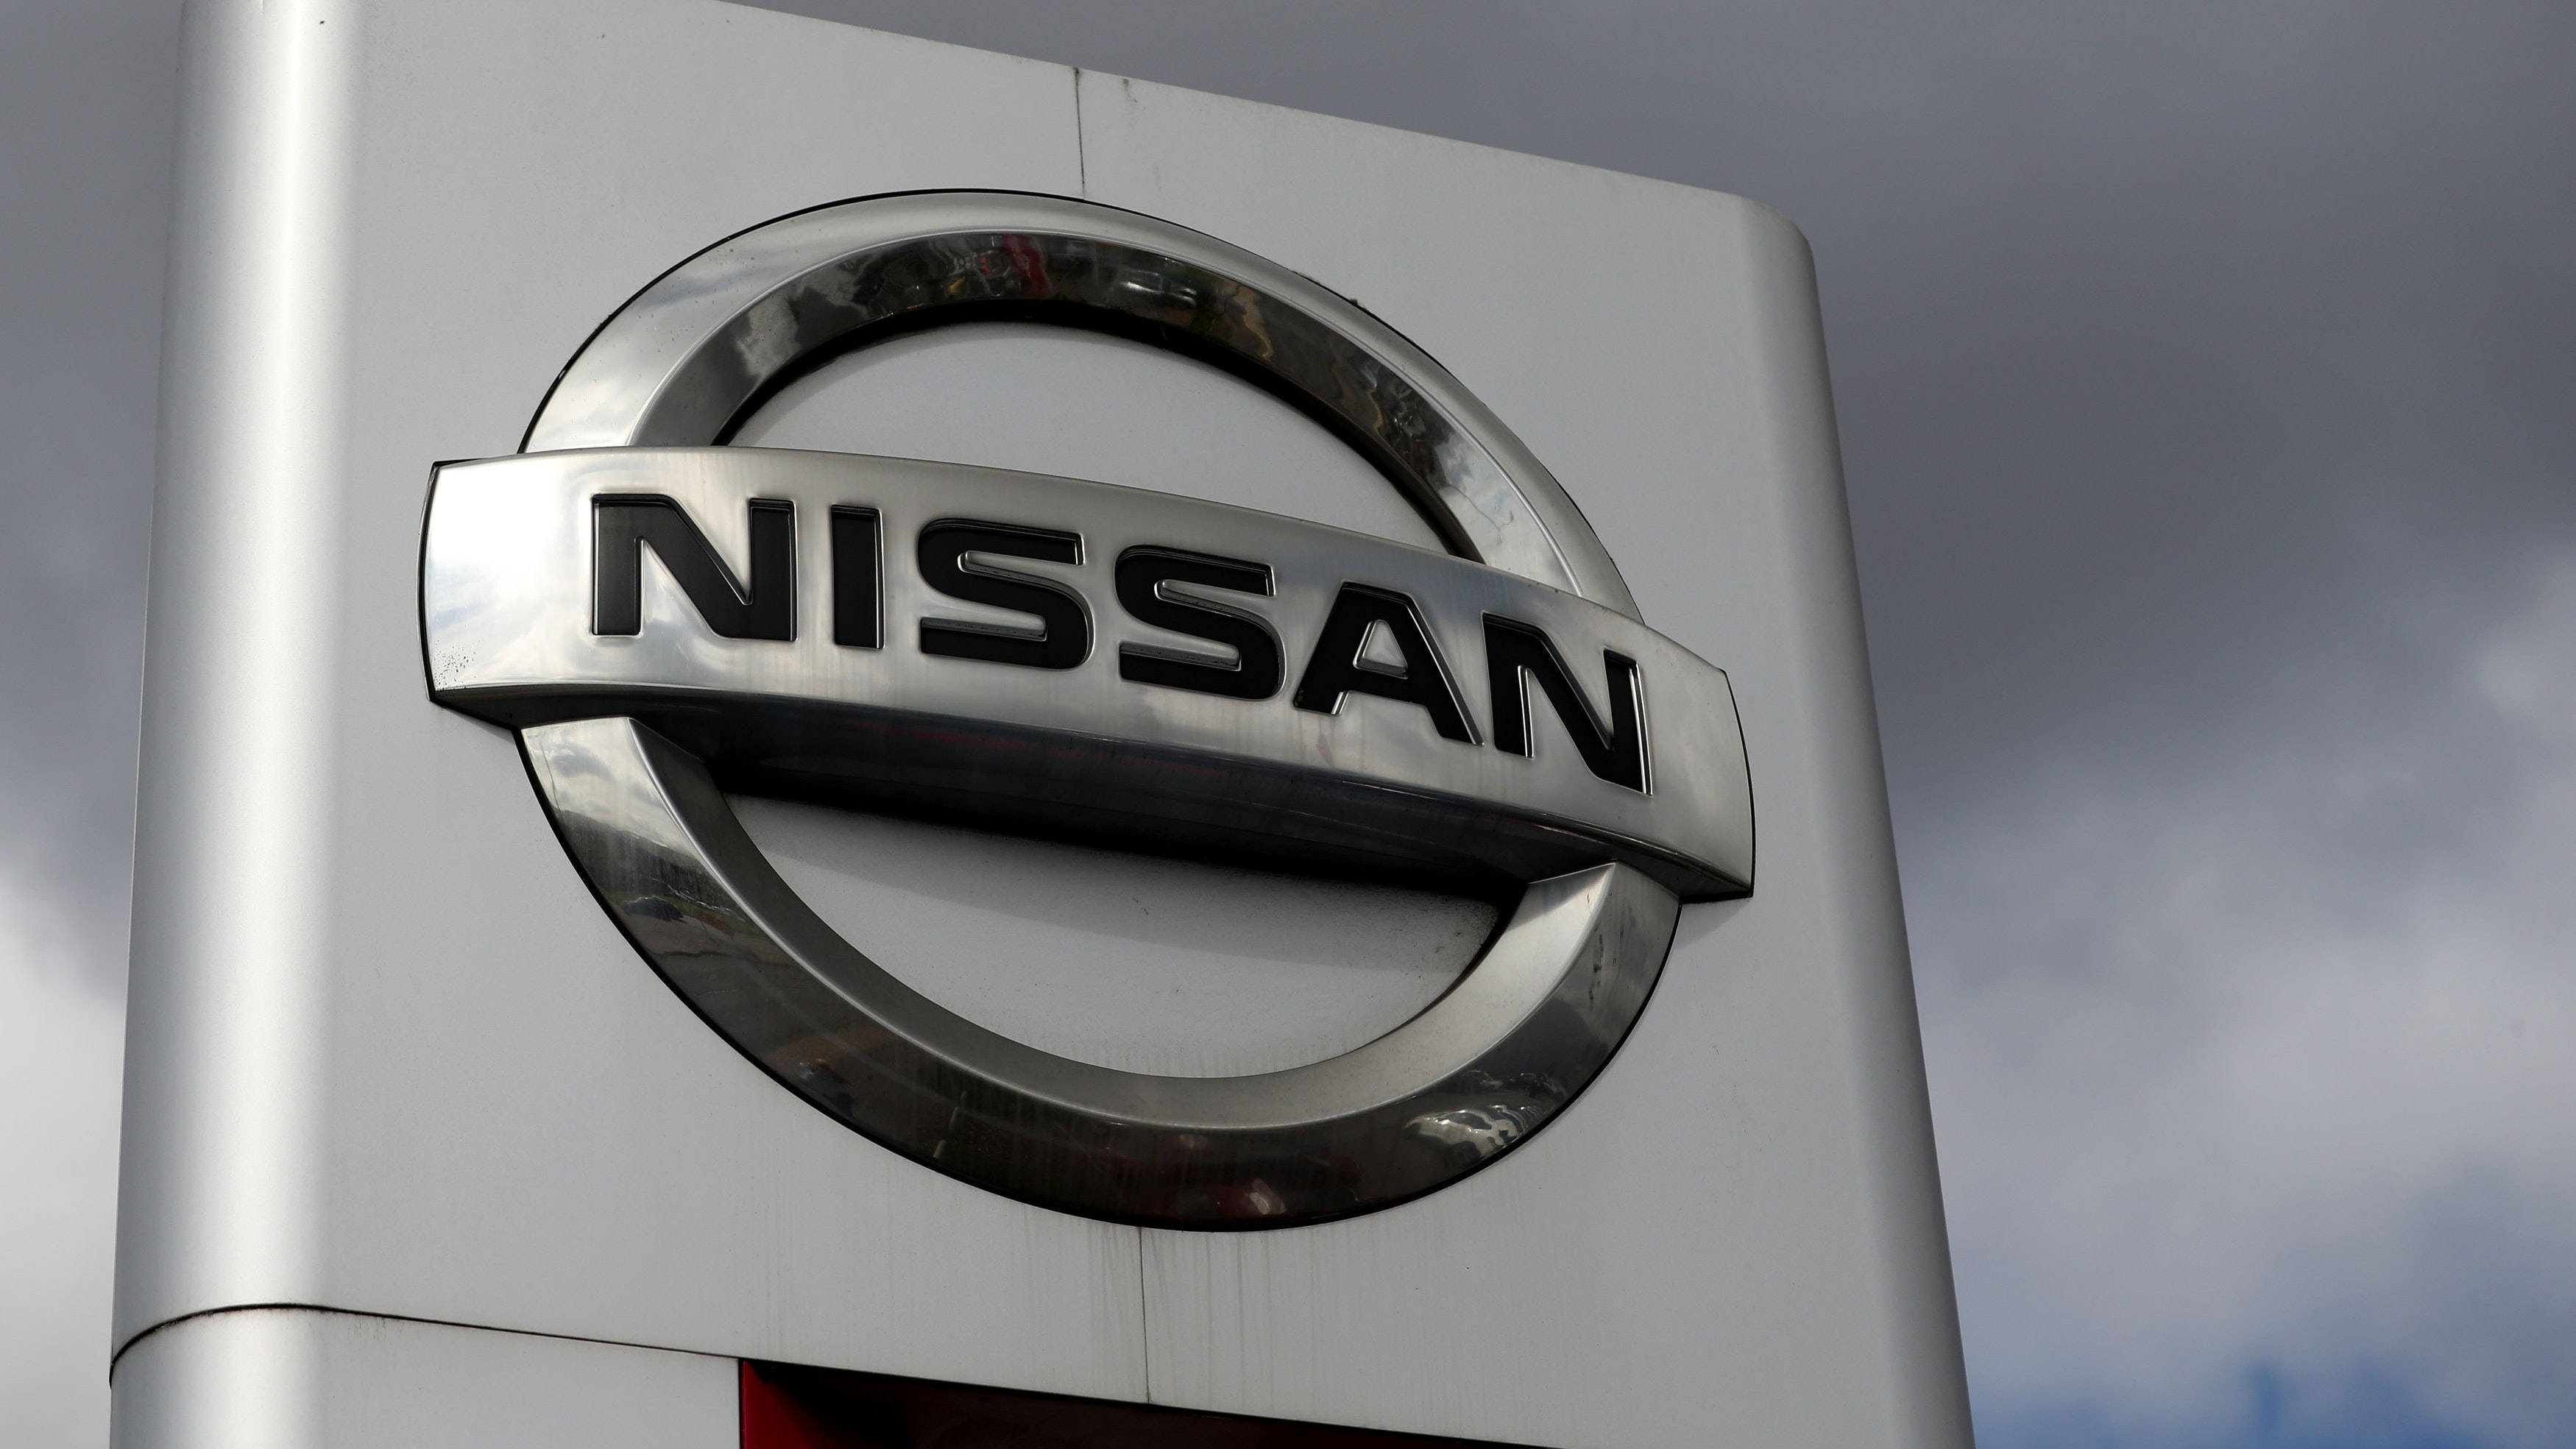 Nissan scraps plan to build new model in Britain